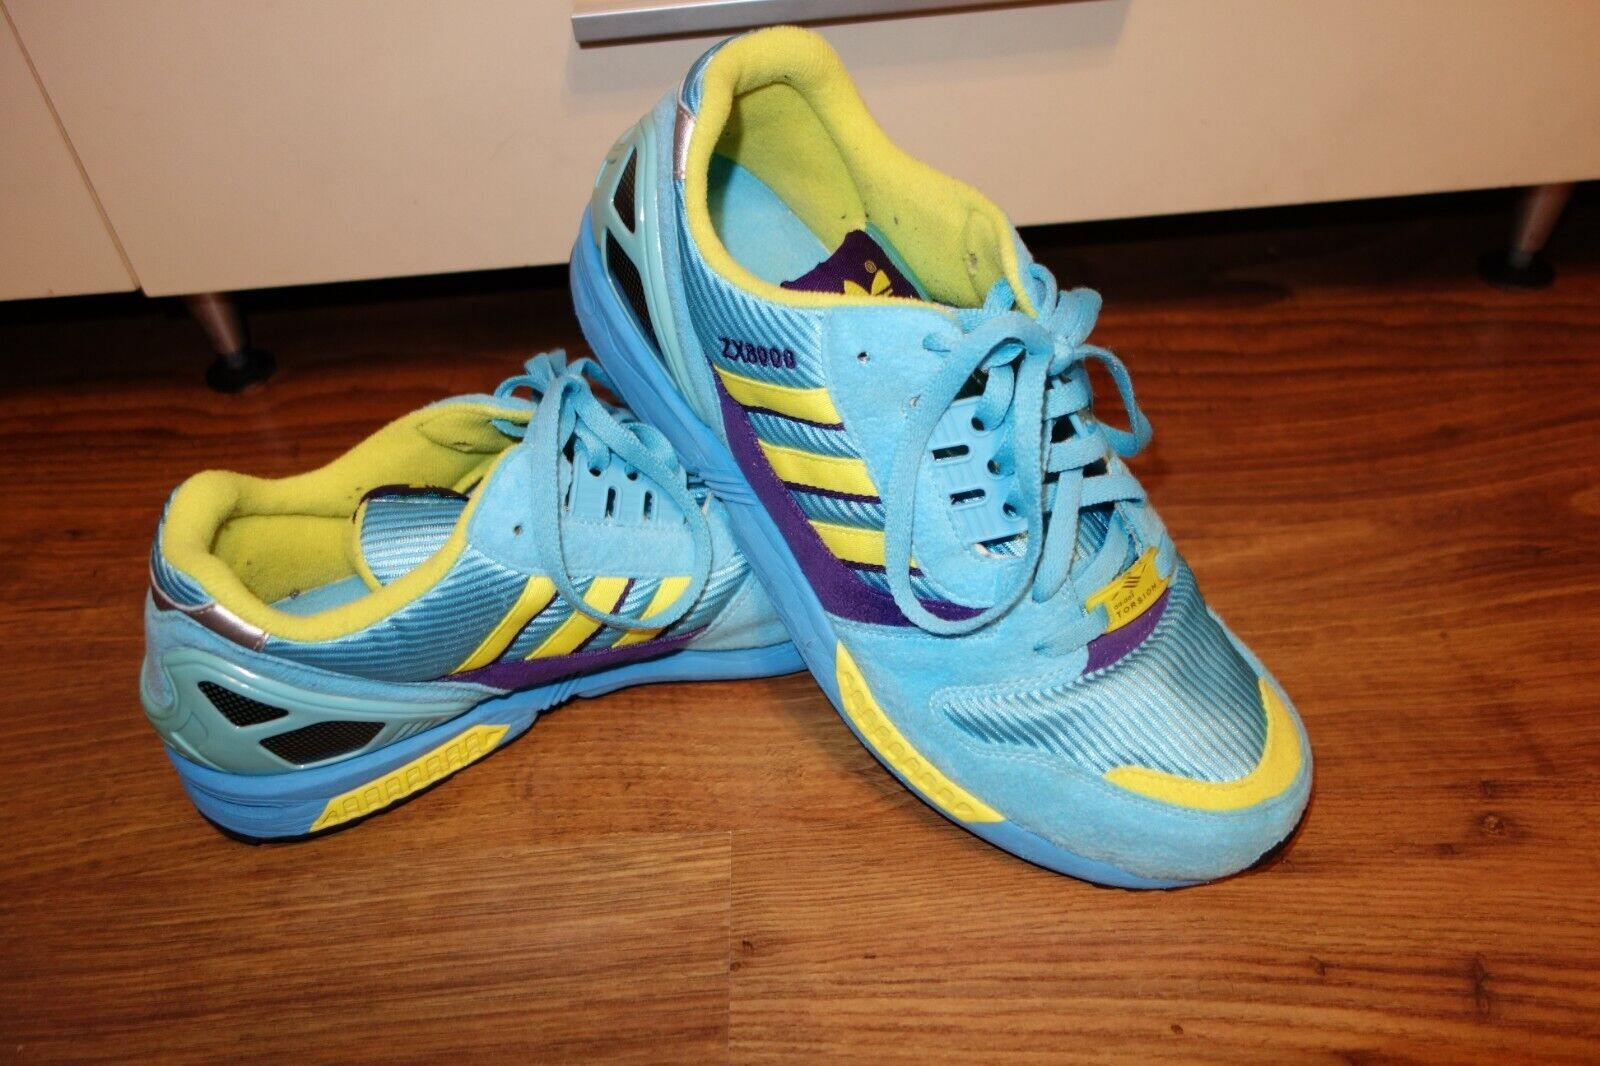 RARE 2009 ADIDAS ZX 8000 AQUA TRAINERS , blueE, EXCELLENT  CONDITION